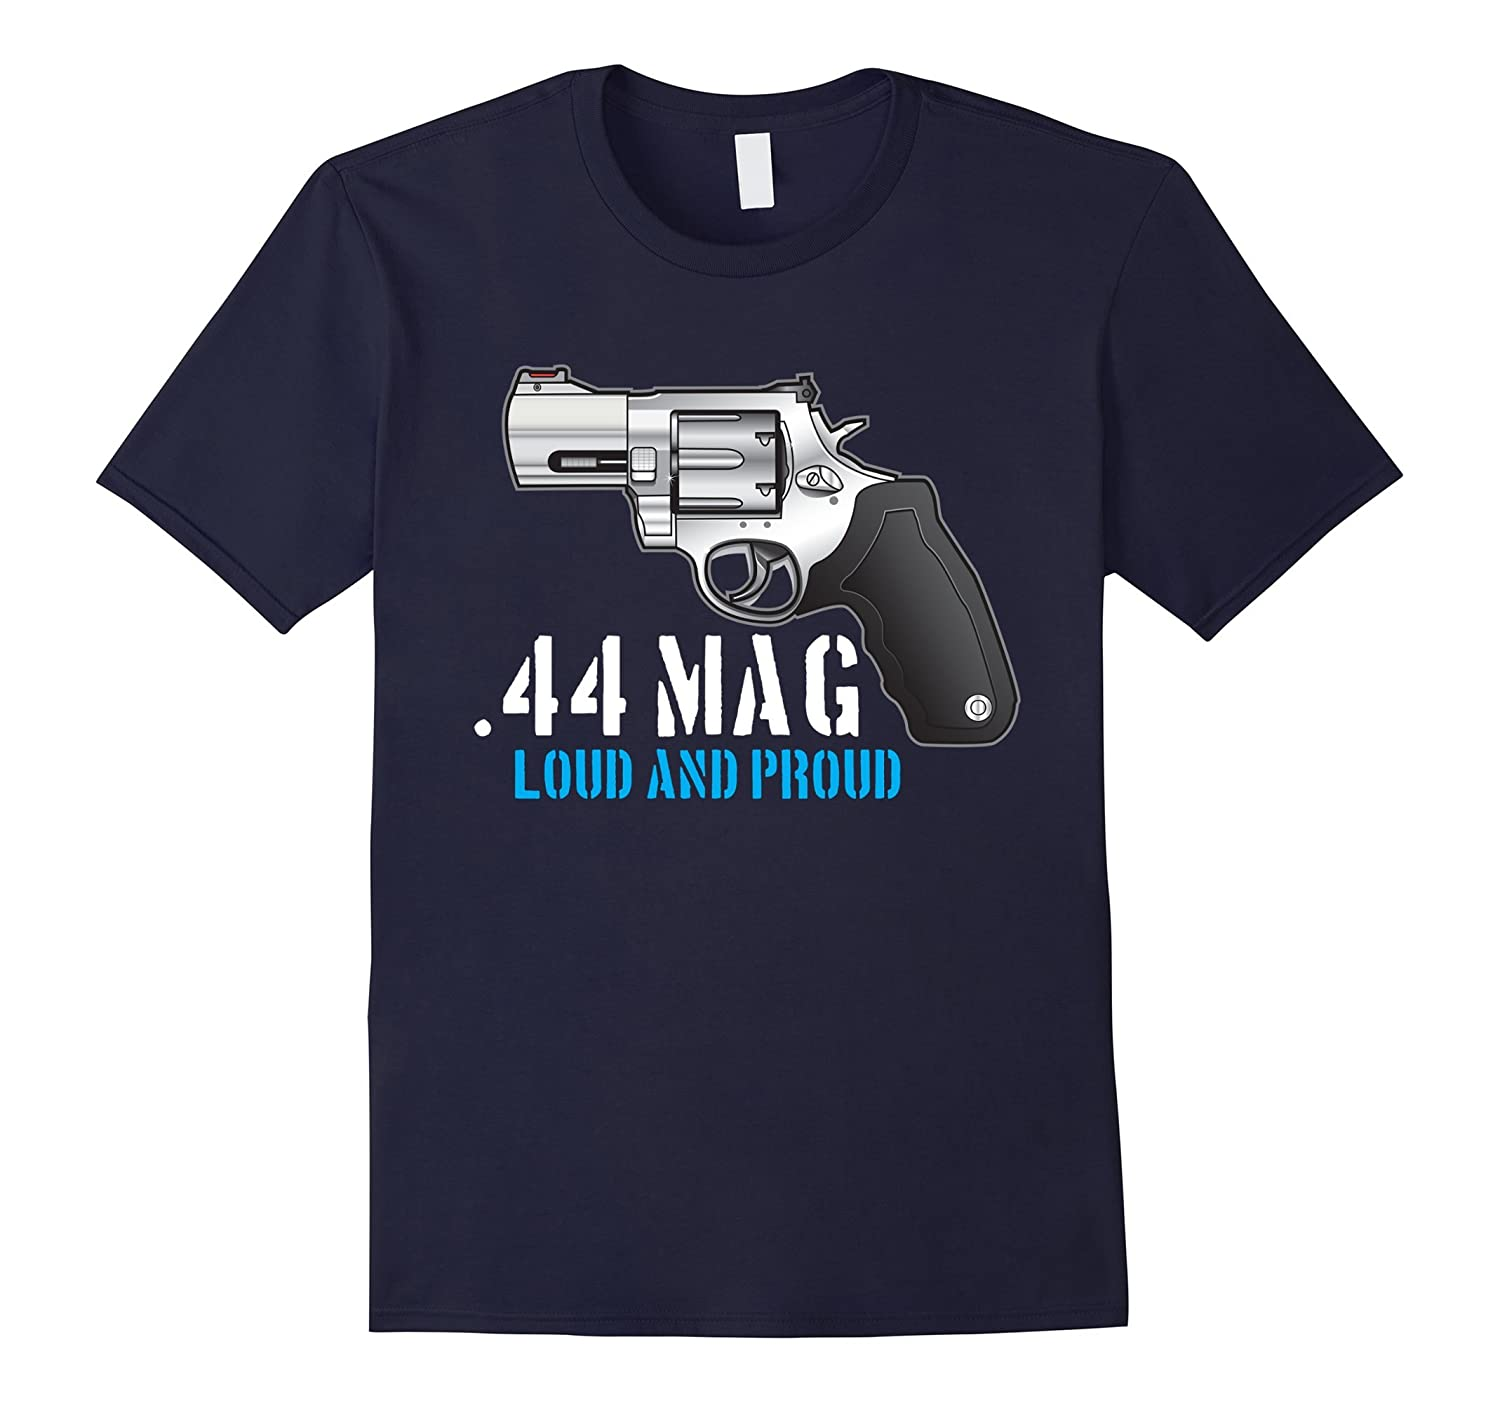 44 mag tee shirt conceal carry mens womens t-shirt-TH